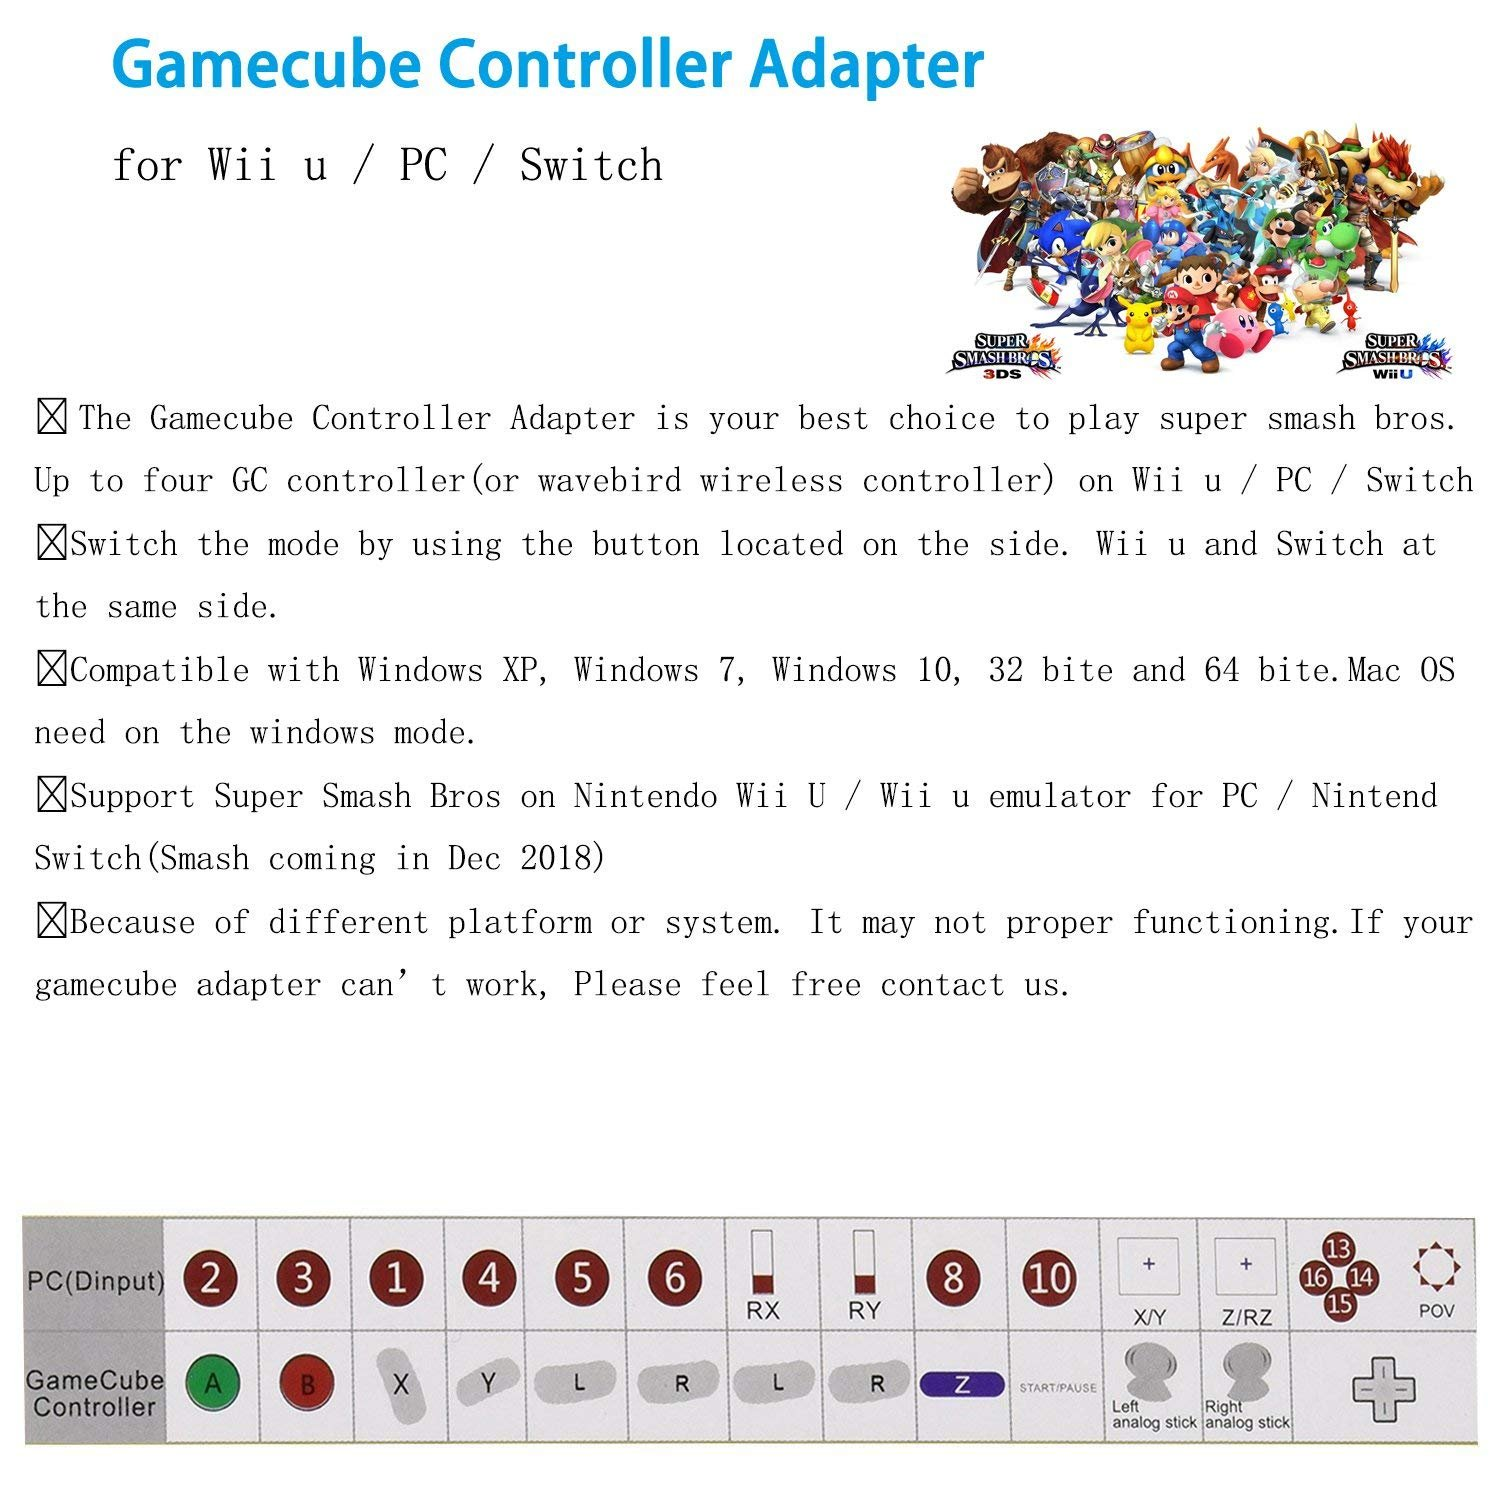 Gamecube Controller Adapter. Super Smash Bros Wii U Gamecube Adapter for Pc, Switch. No Driver Need and Easy to Use. 4 Port Black Gamecube Adapter(Improved Version) by Cloudream (Image #6)